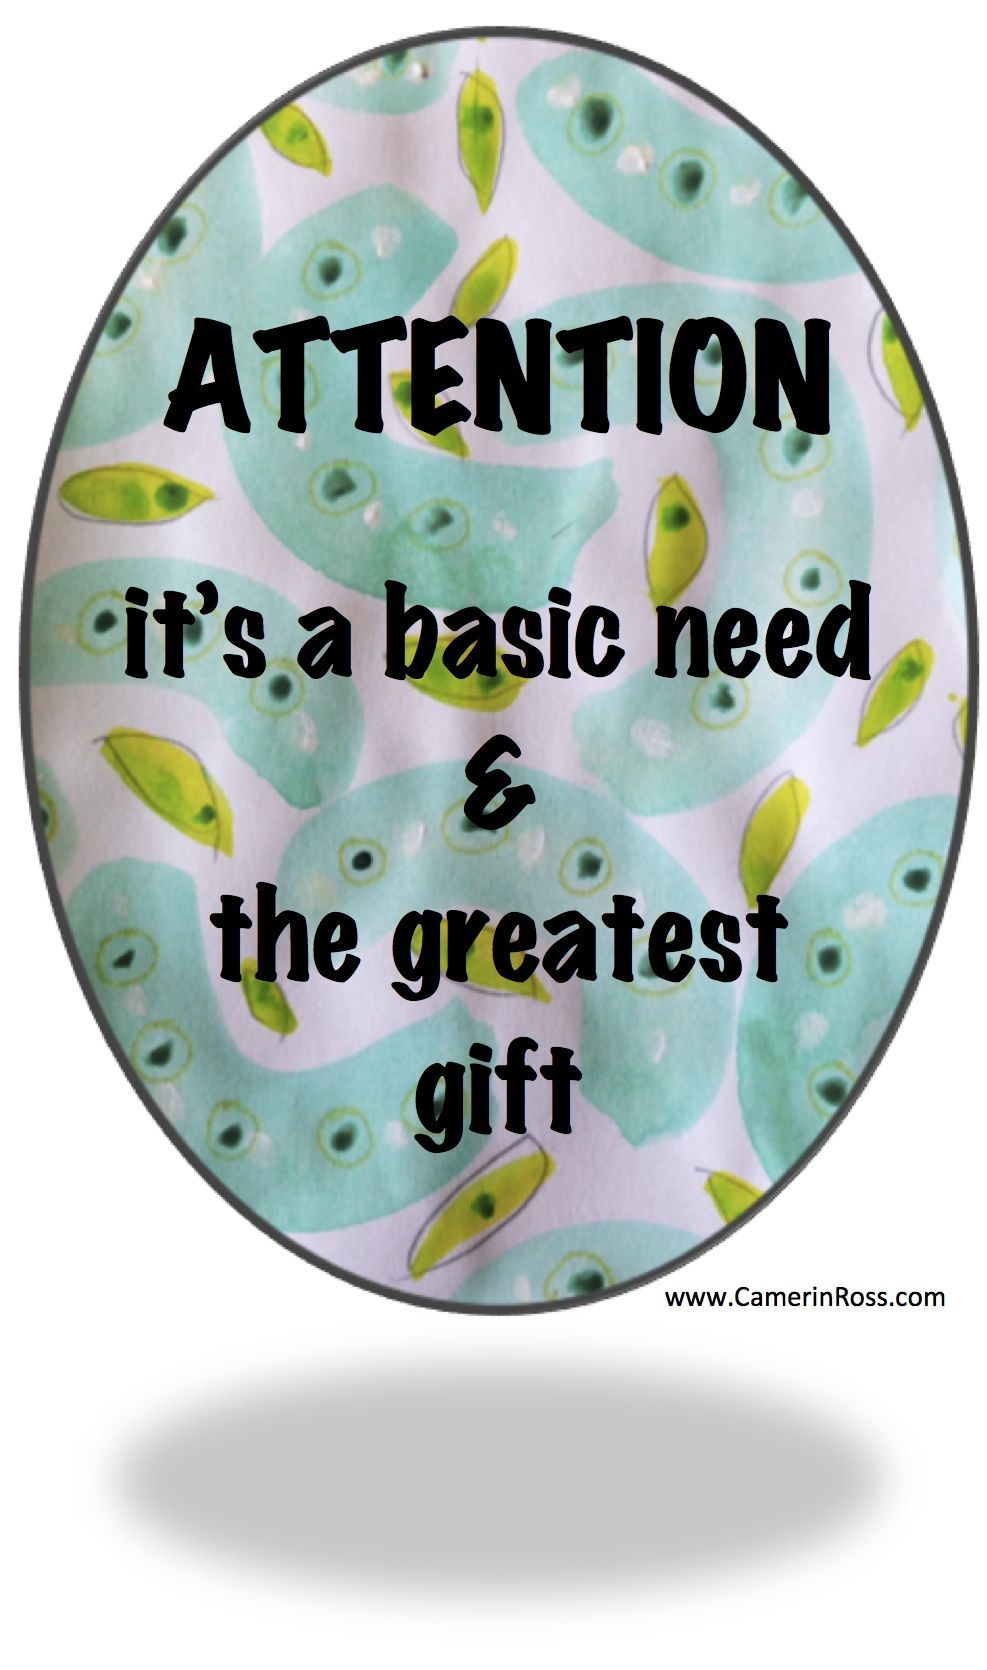 Attention--it's a basic need and the greatest gift | www.CamerinRoss.com